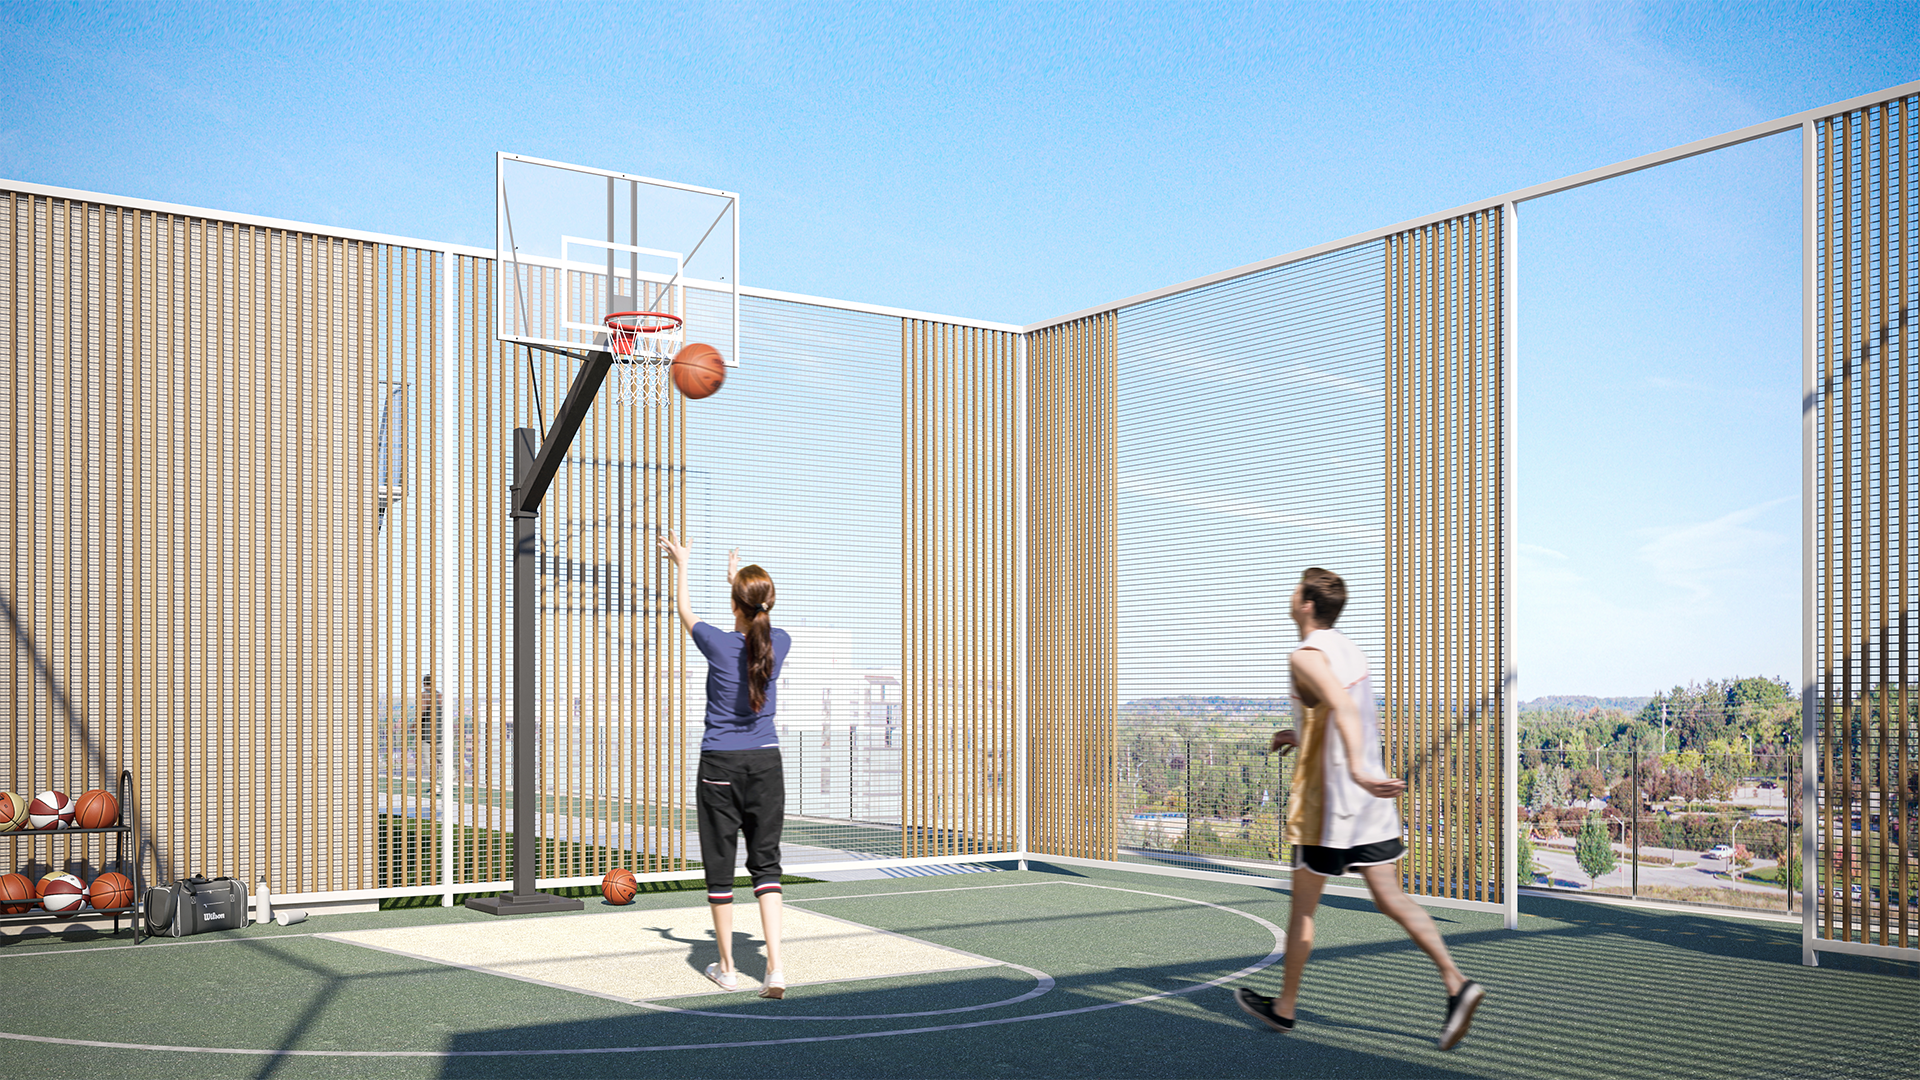 Y9825 Rooftop Basketball Court